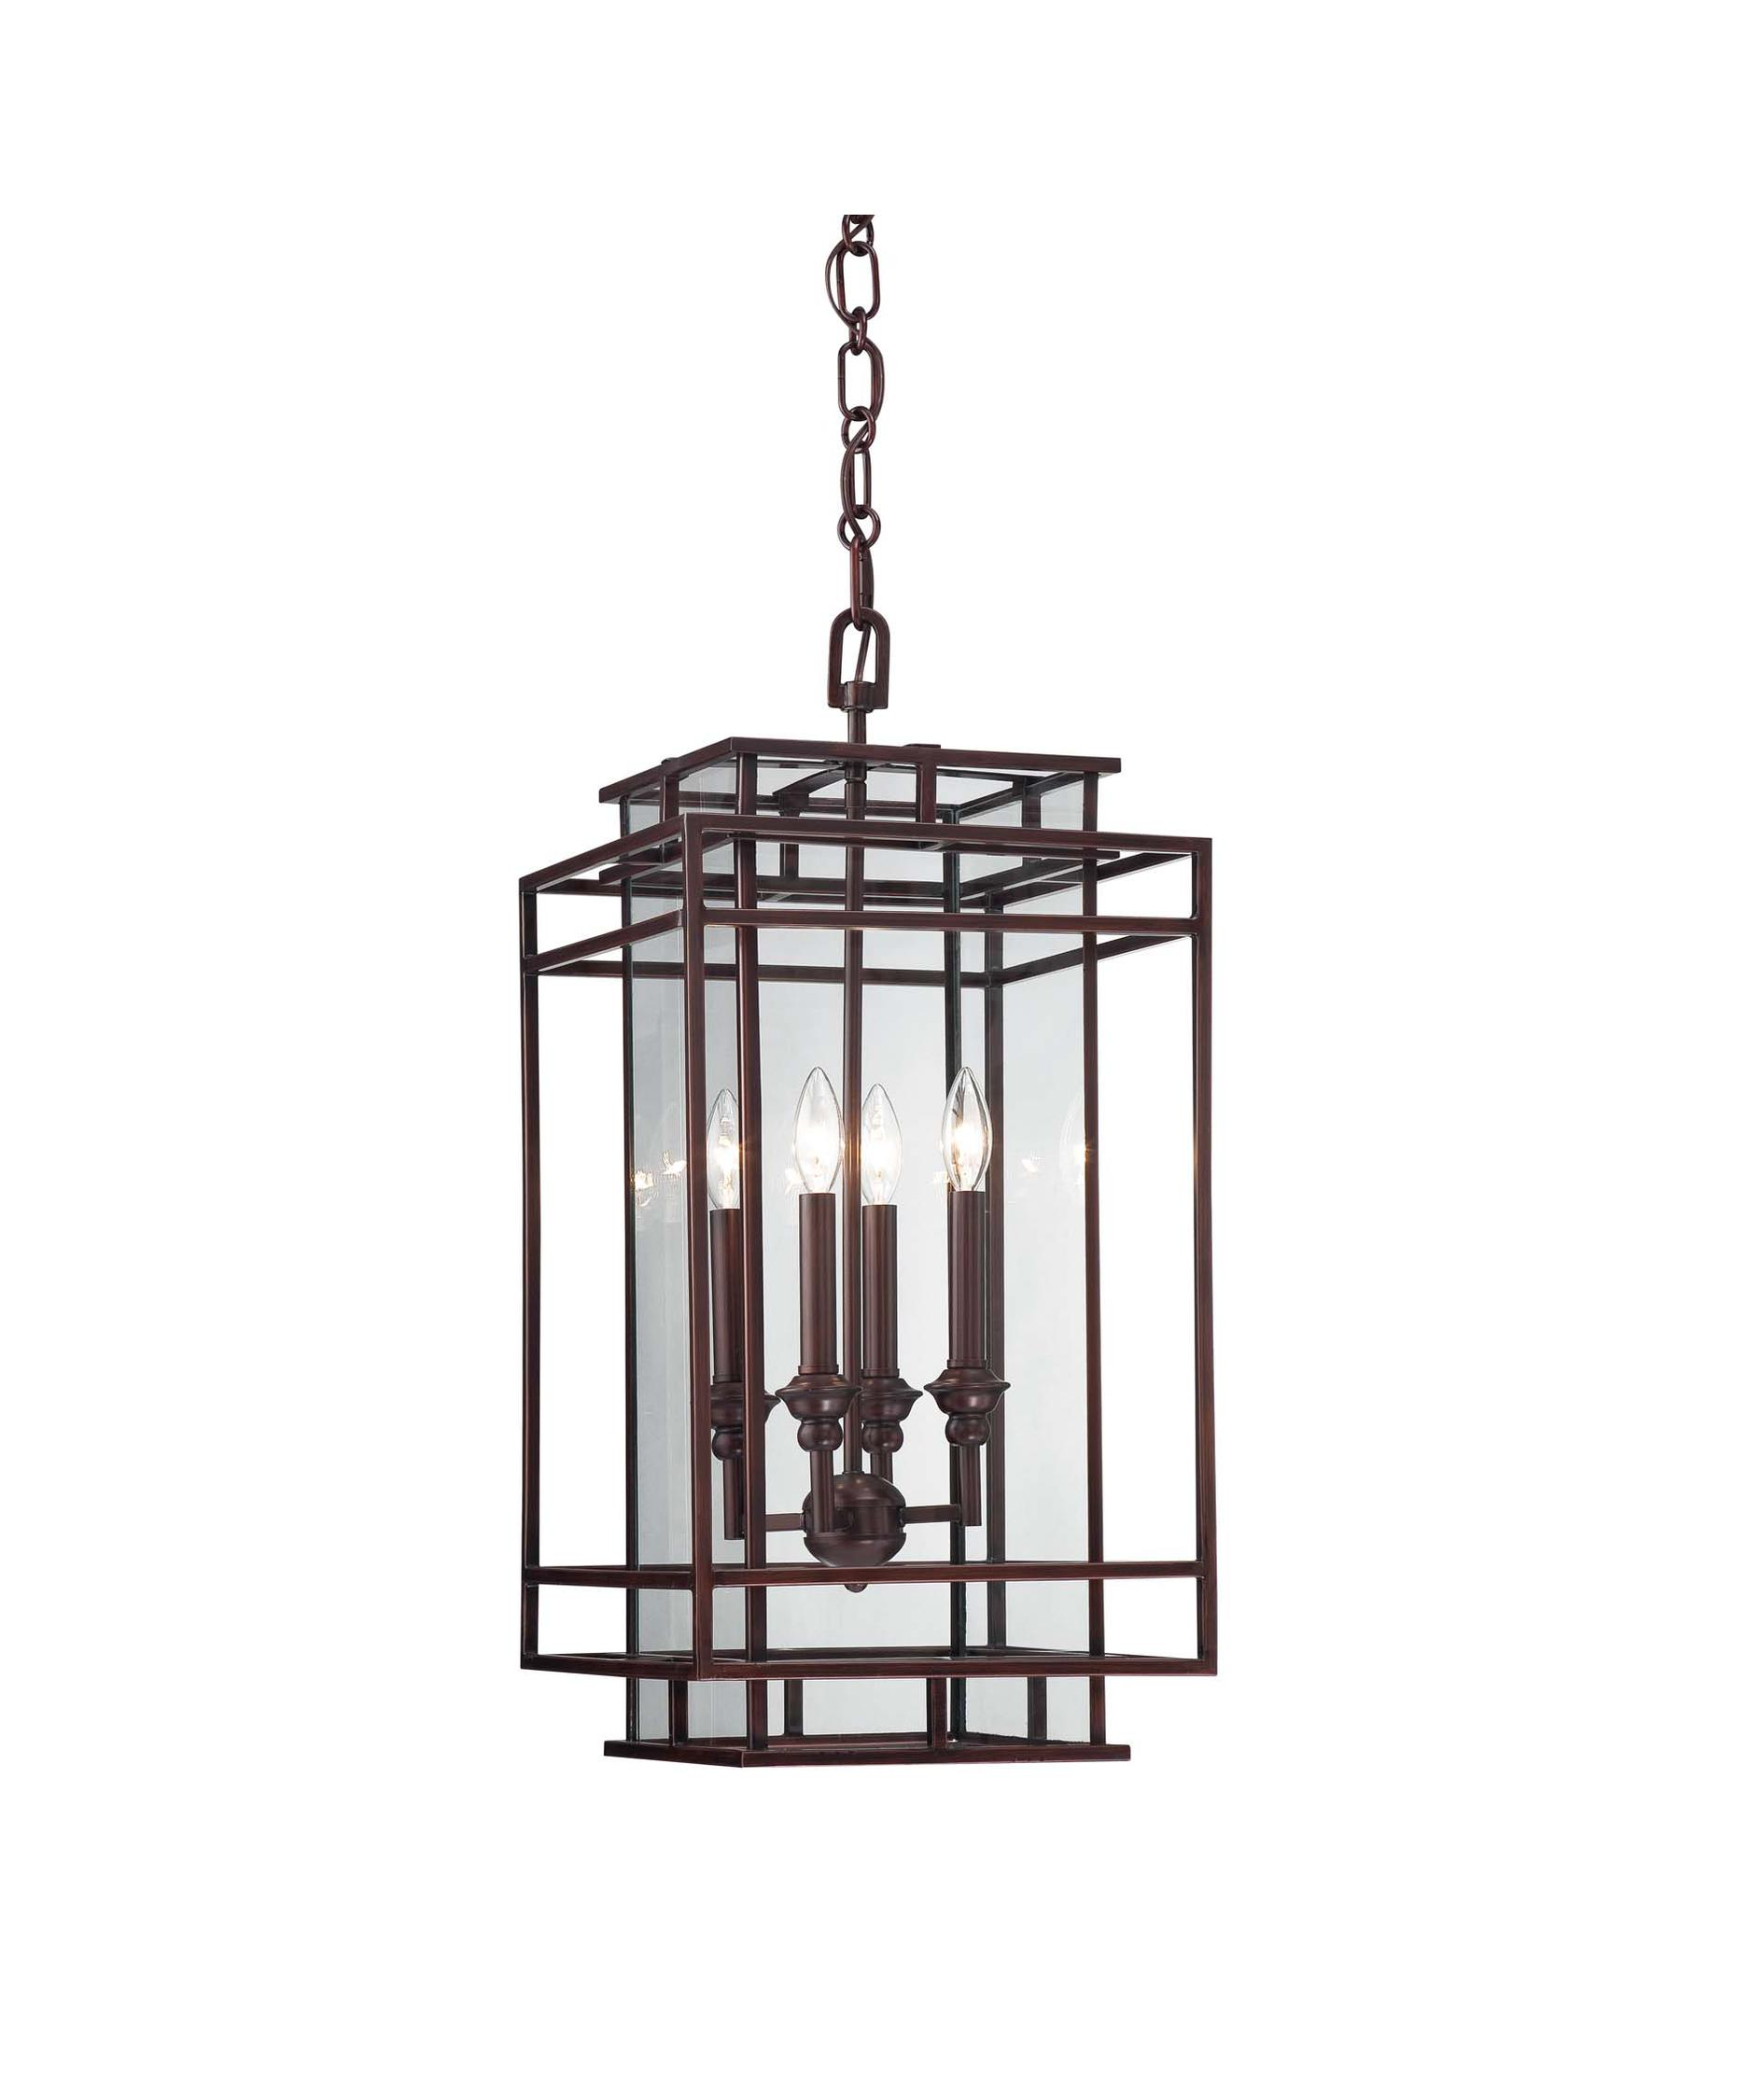 Savoy house 3 8203 4 harmony 13 inch foyer pendant for Savoy house